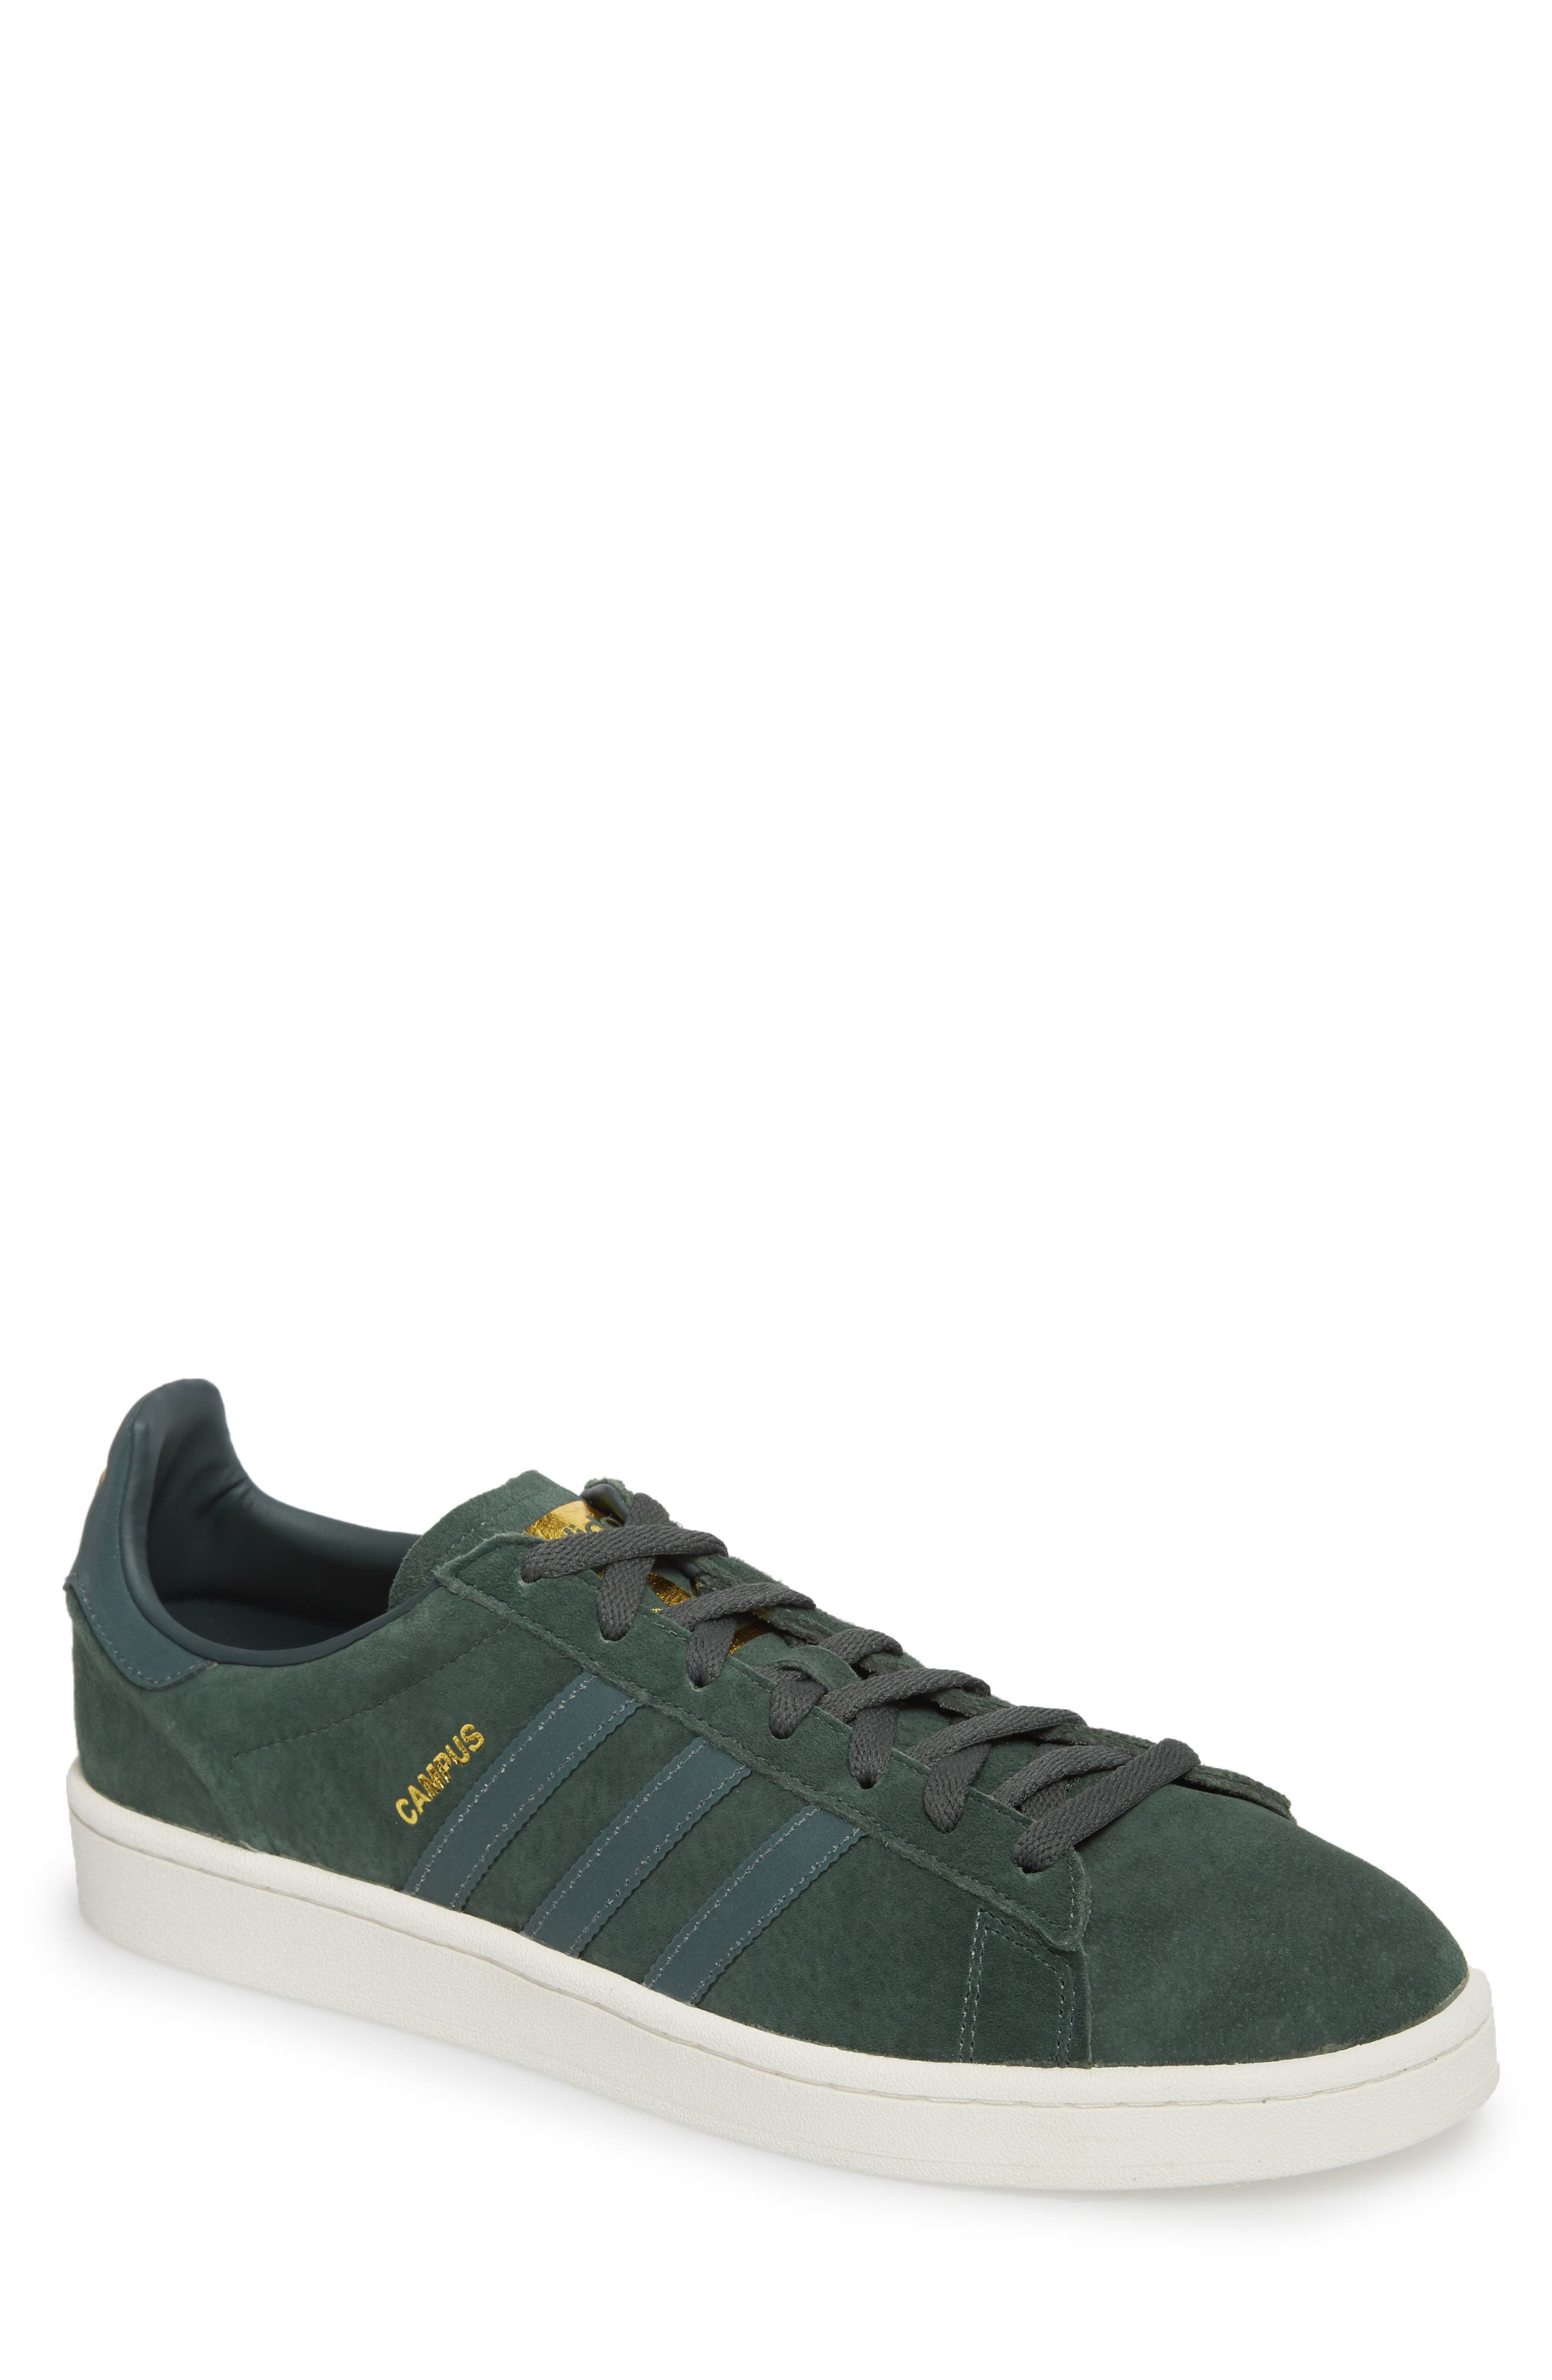 Campus Sneaker,                         Main,                         color, Utility Ivy/ Reflective/ Gold